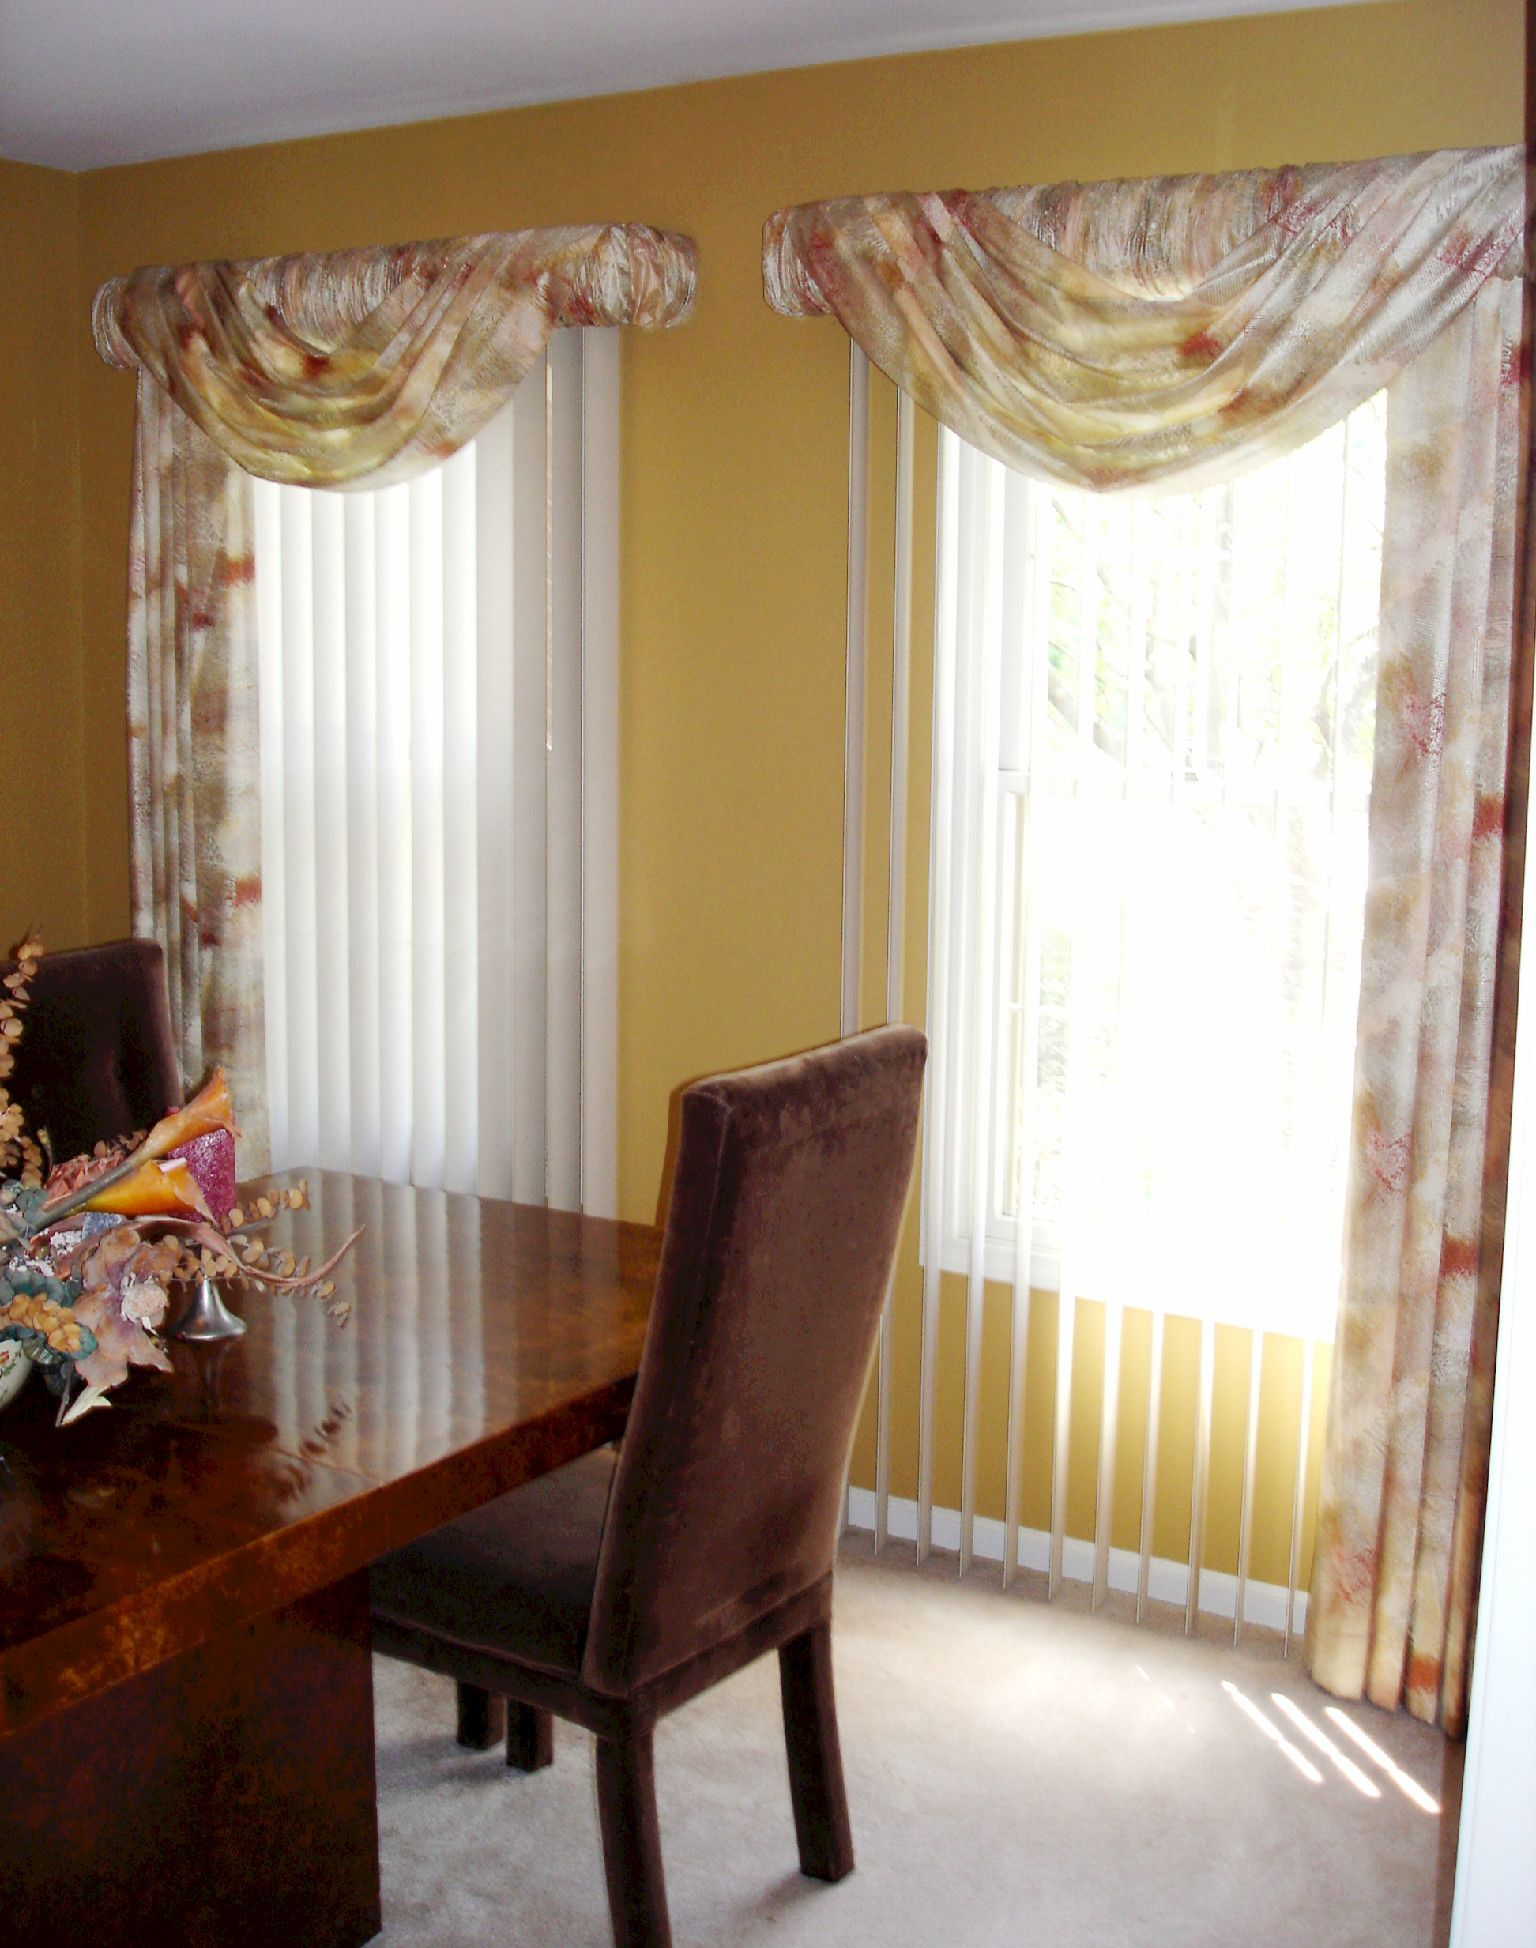 Charming Valance Ideas For Home Interior Awesome Decor With Brown Wooden Dining Table And Chairs Room